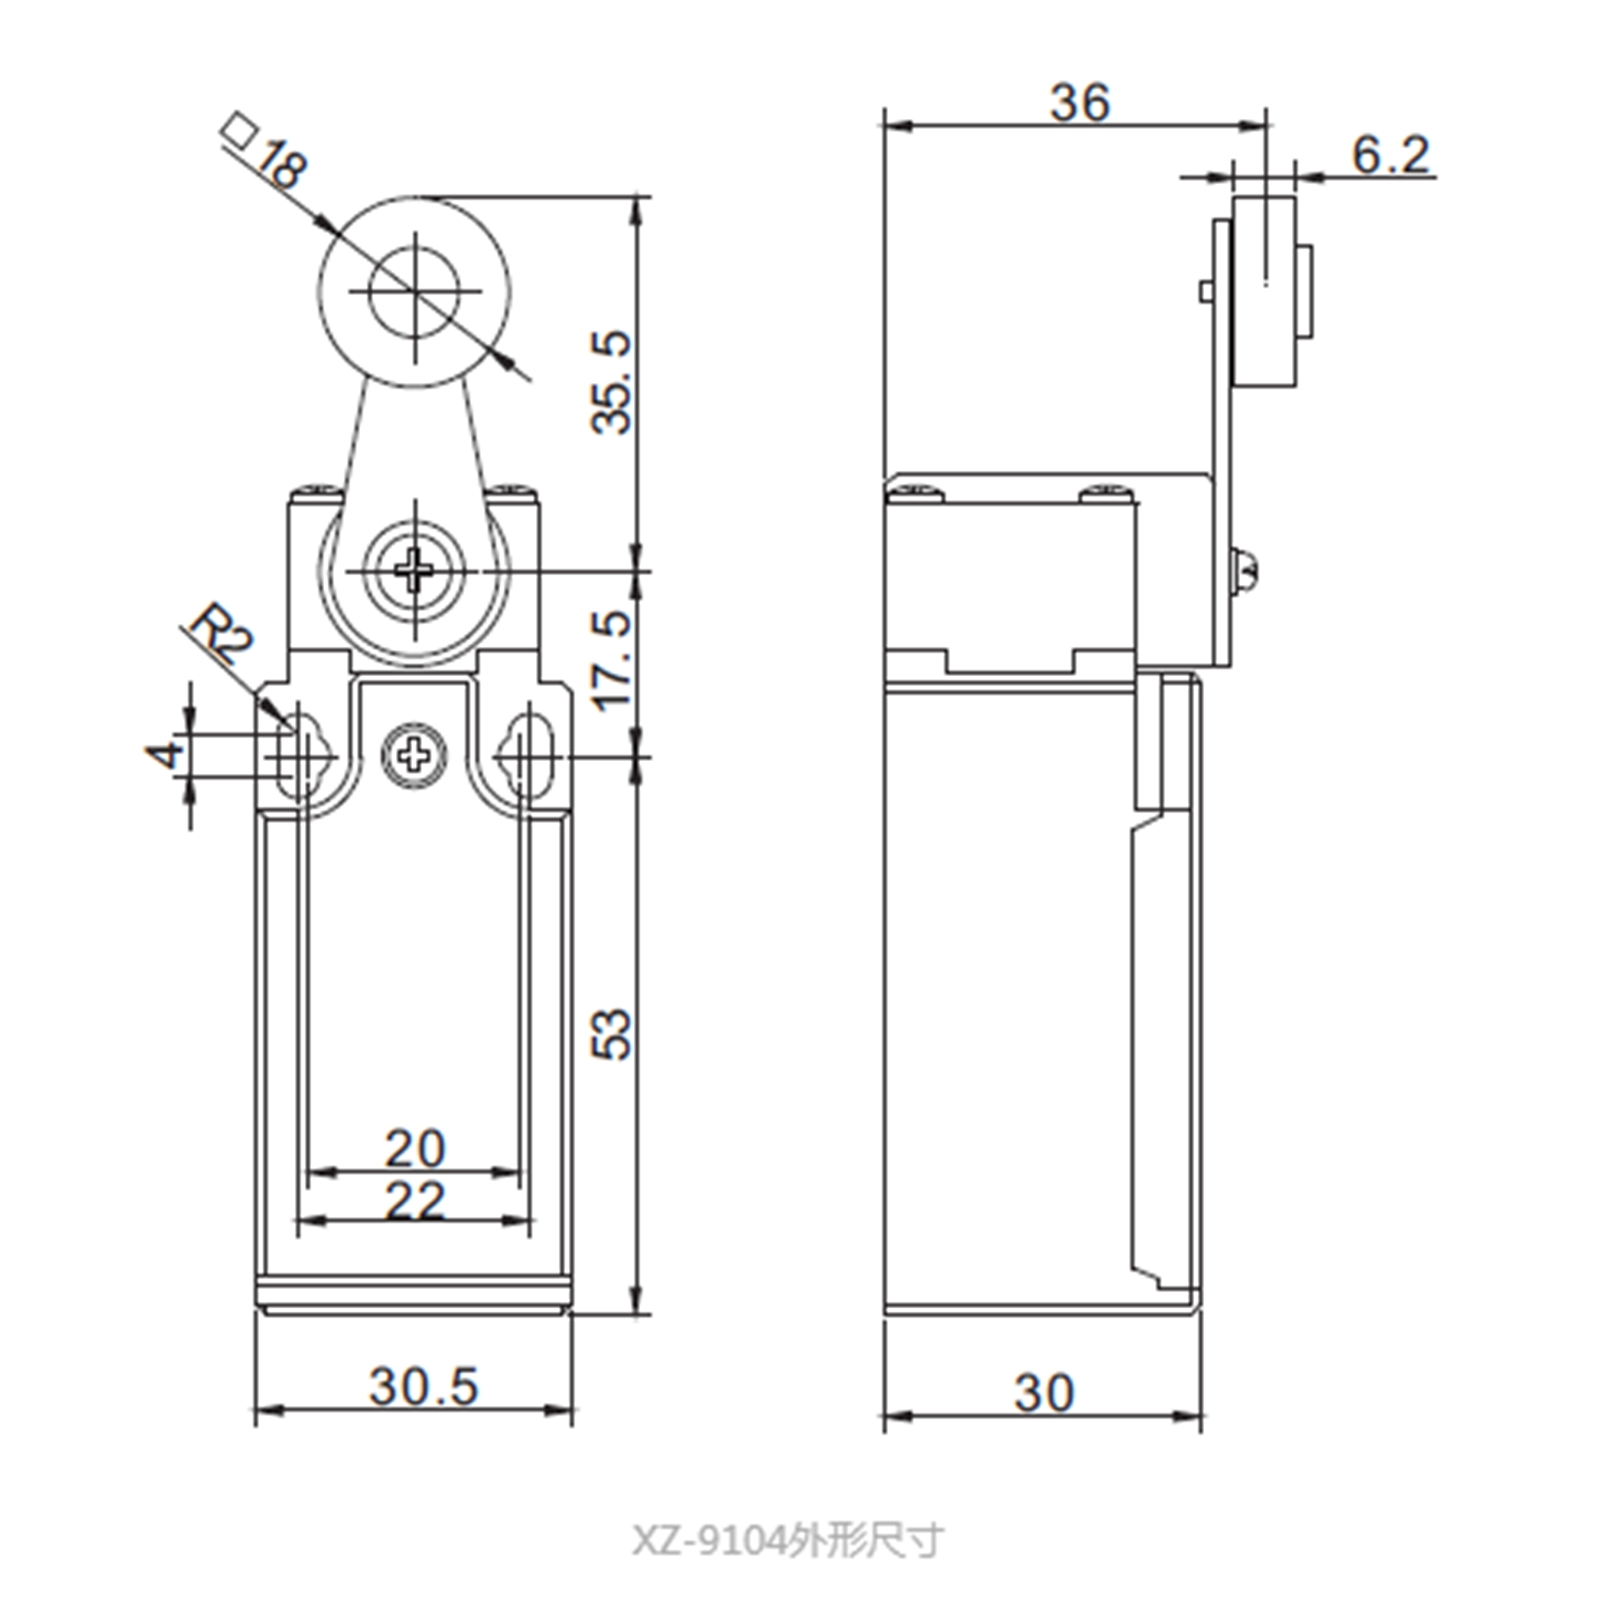 Xz 9104 104a 250vac No Nc Miniature Limit Switch Spdt Roller Arm Single Pole Double Throw Wiring Diagram Detail Product Itemxz 9103